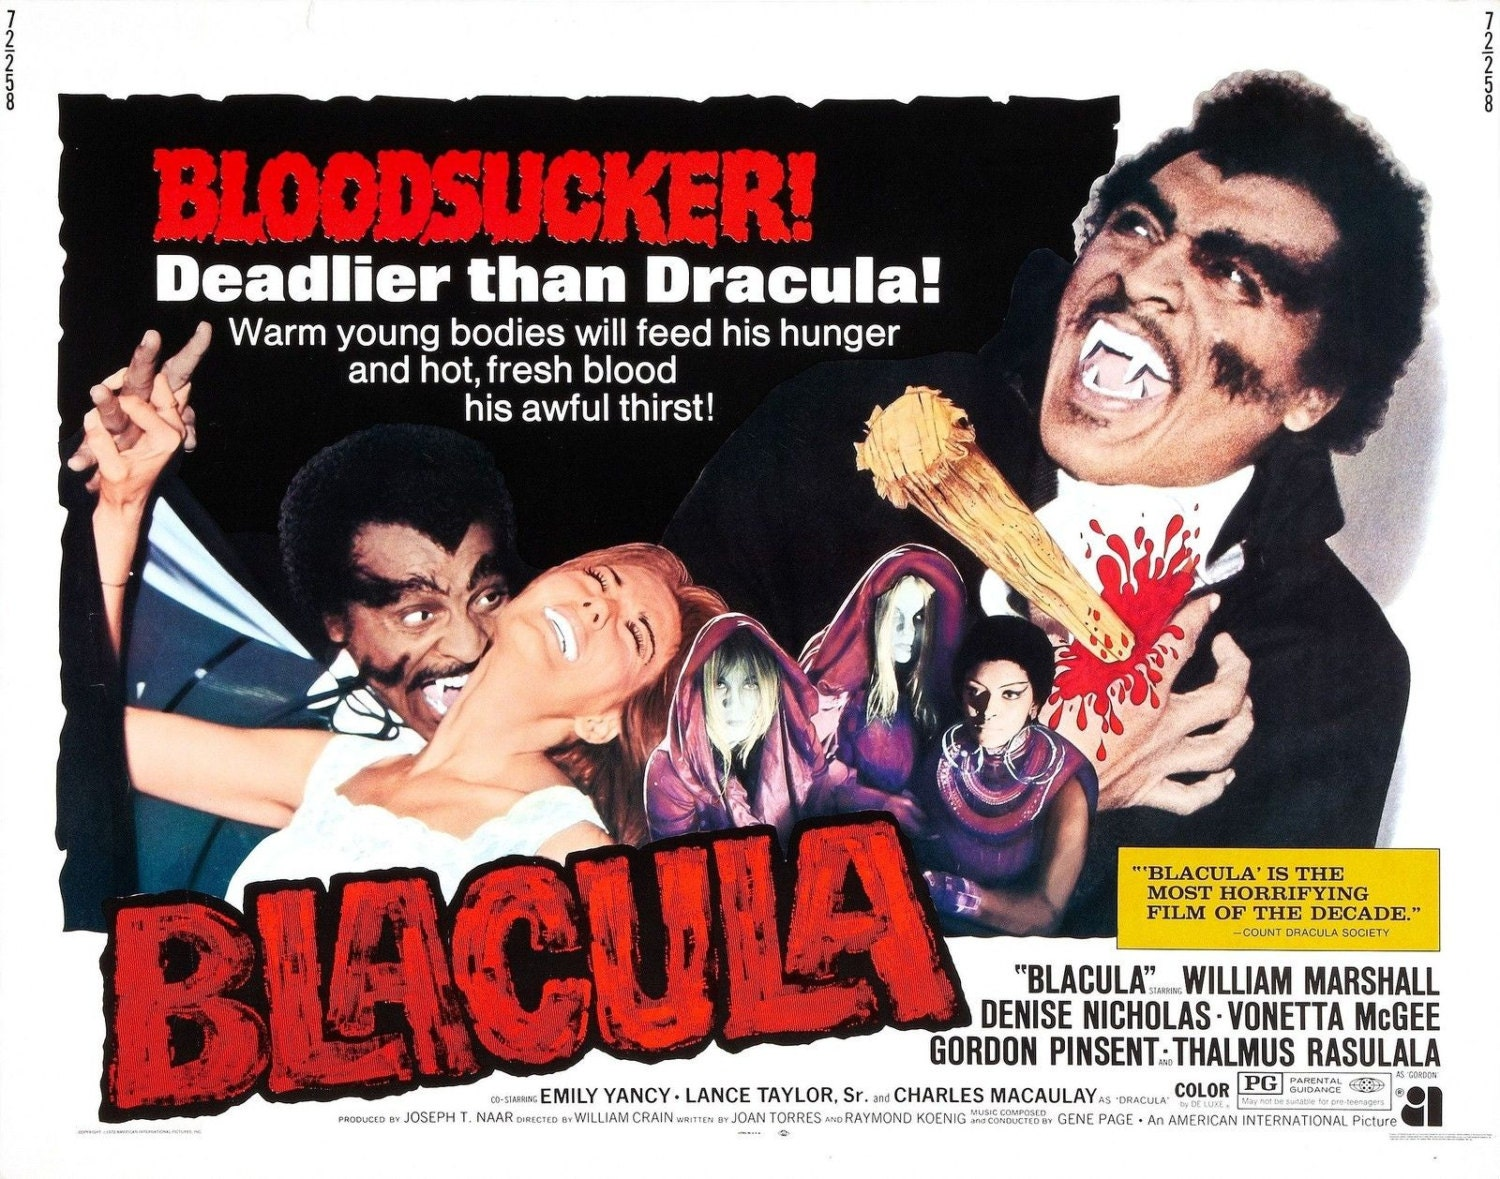 BLACULA Movie Poster Blaxploitation Horror Grindhouse | Etsy